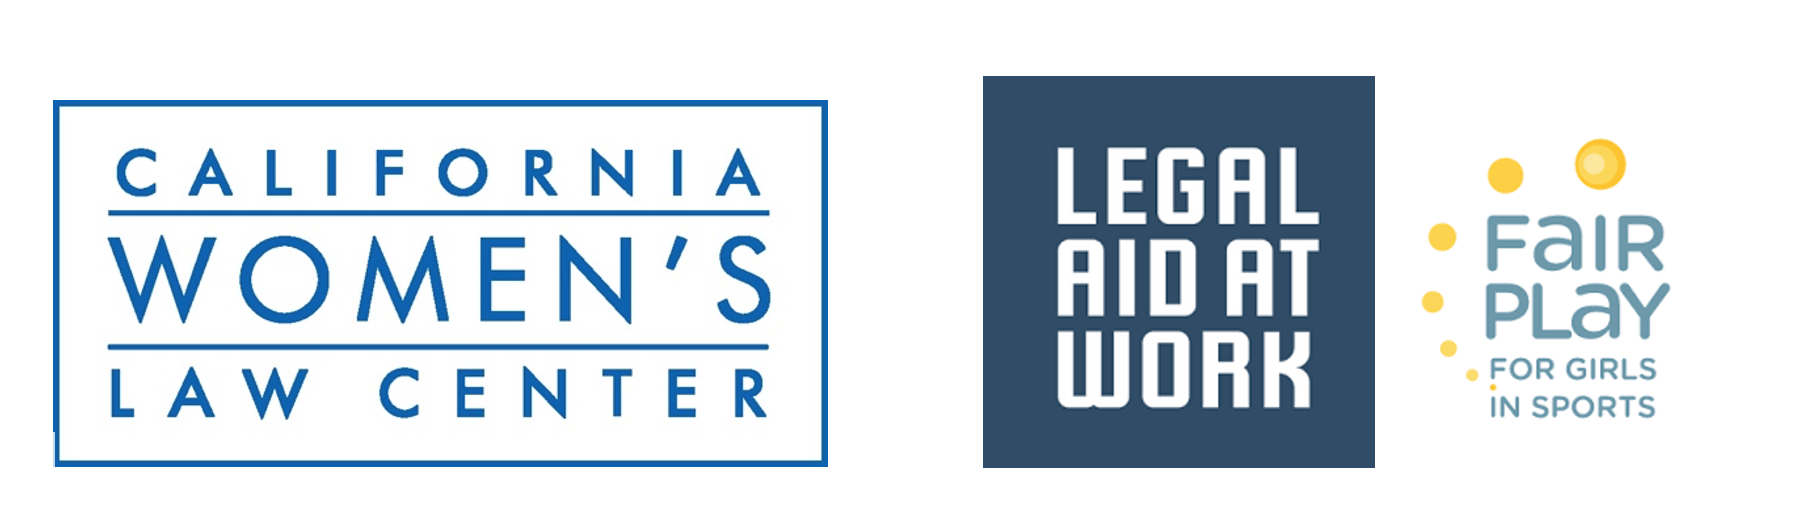 Logos of the California Women's Law Center, Legal Aid at Work, and the Fair Play for Girls in Sports Program